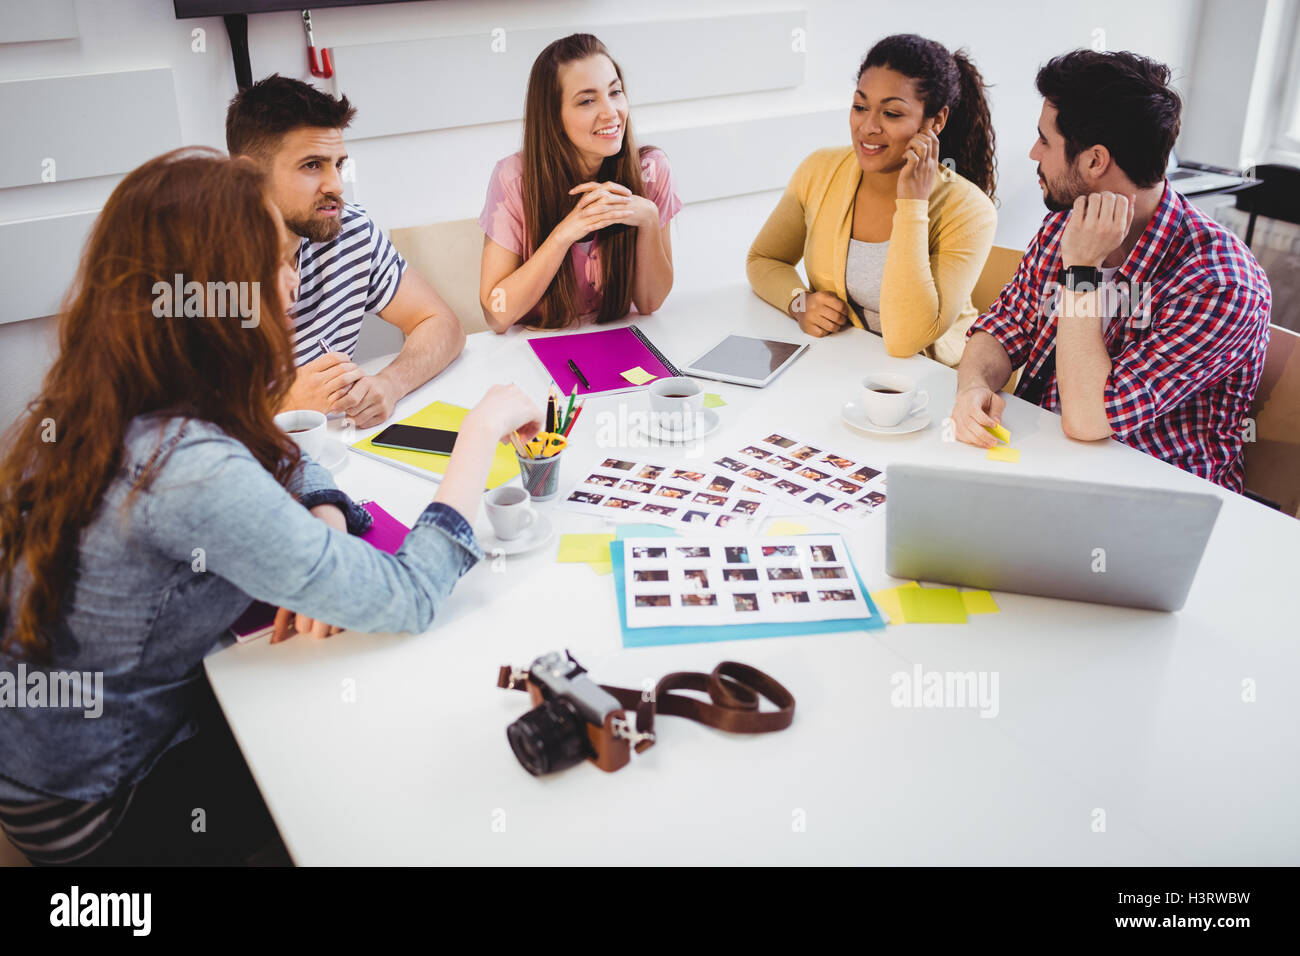 Editors discussing photographs in meeting at creative office - Stock Image